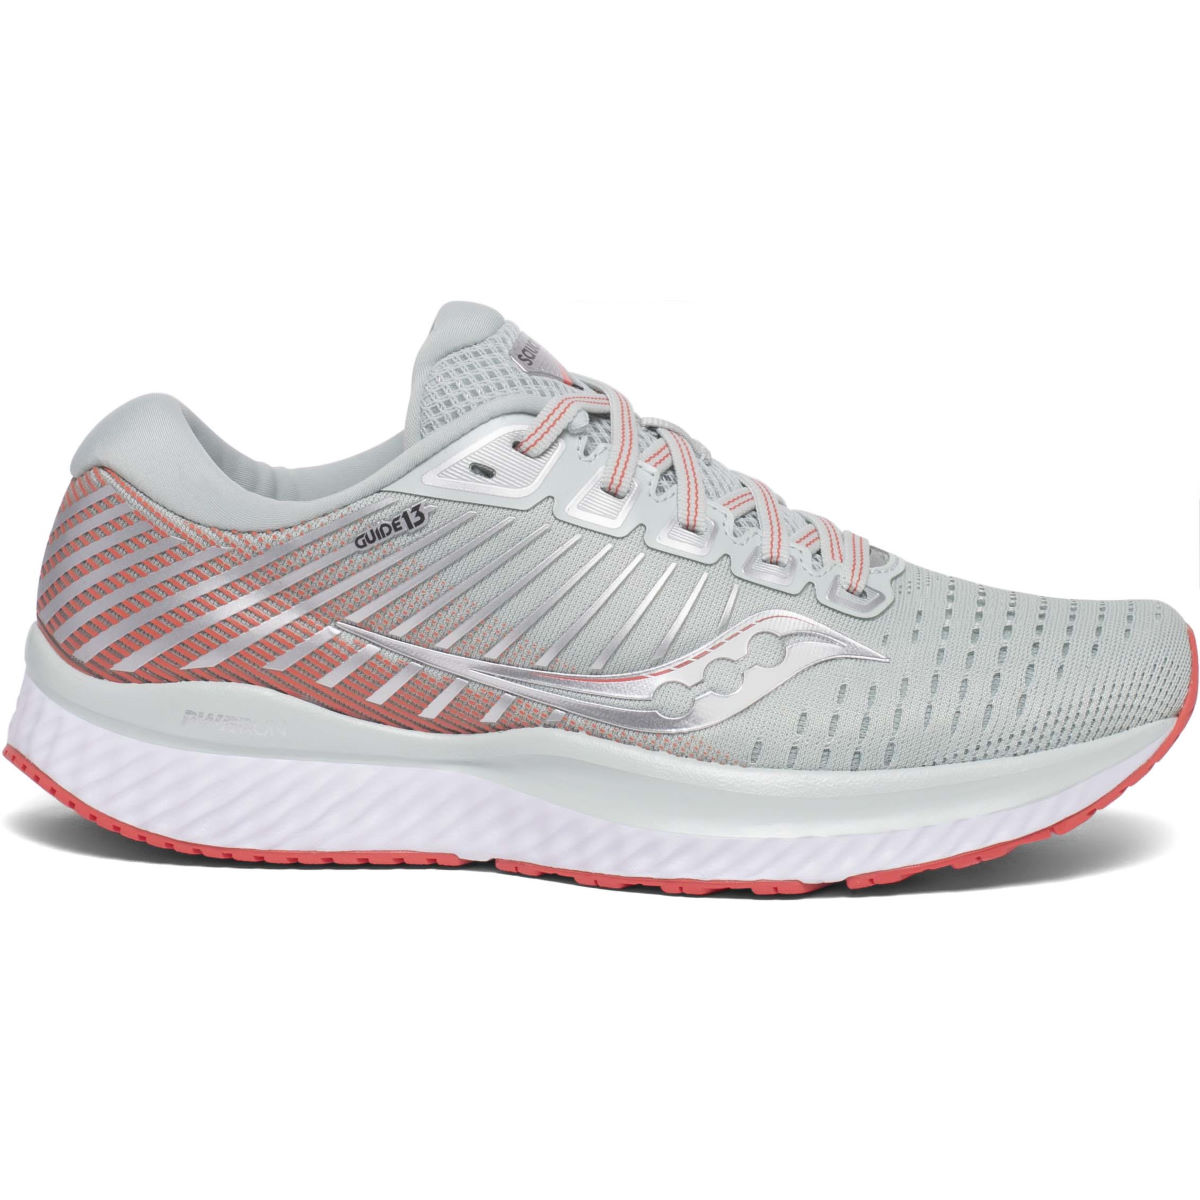 Saucony Women's Guide 13 Running Shoes - 9.5 Sky Grey / Coral